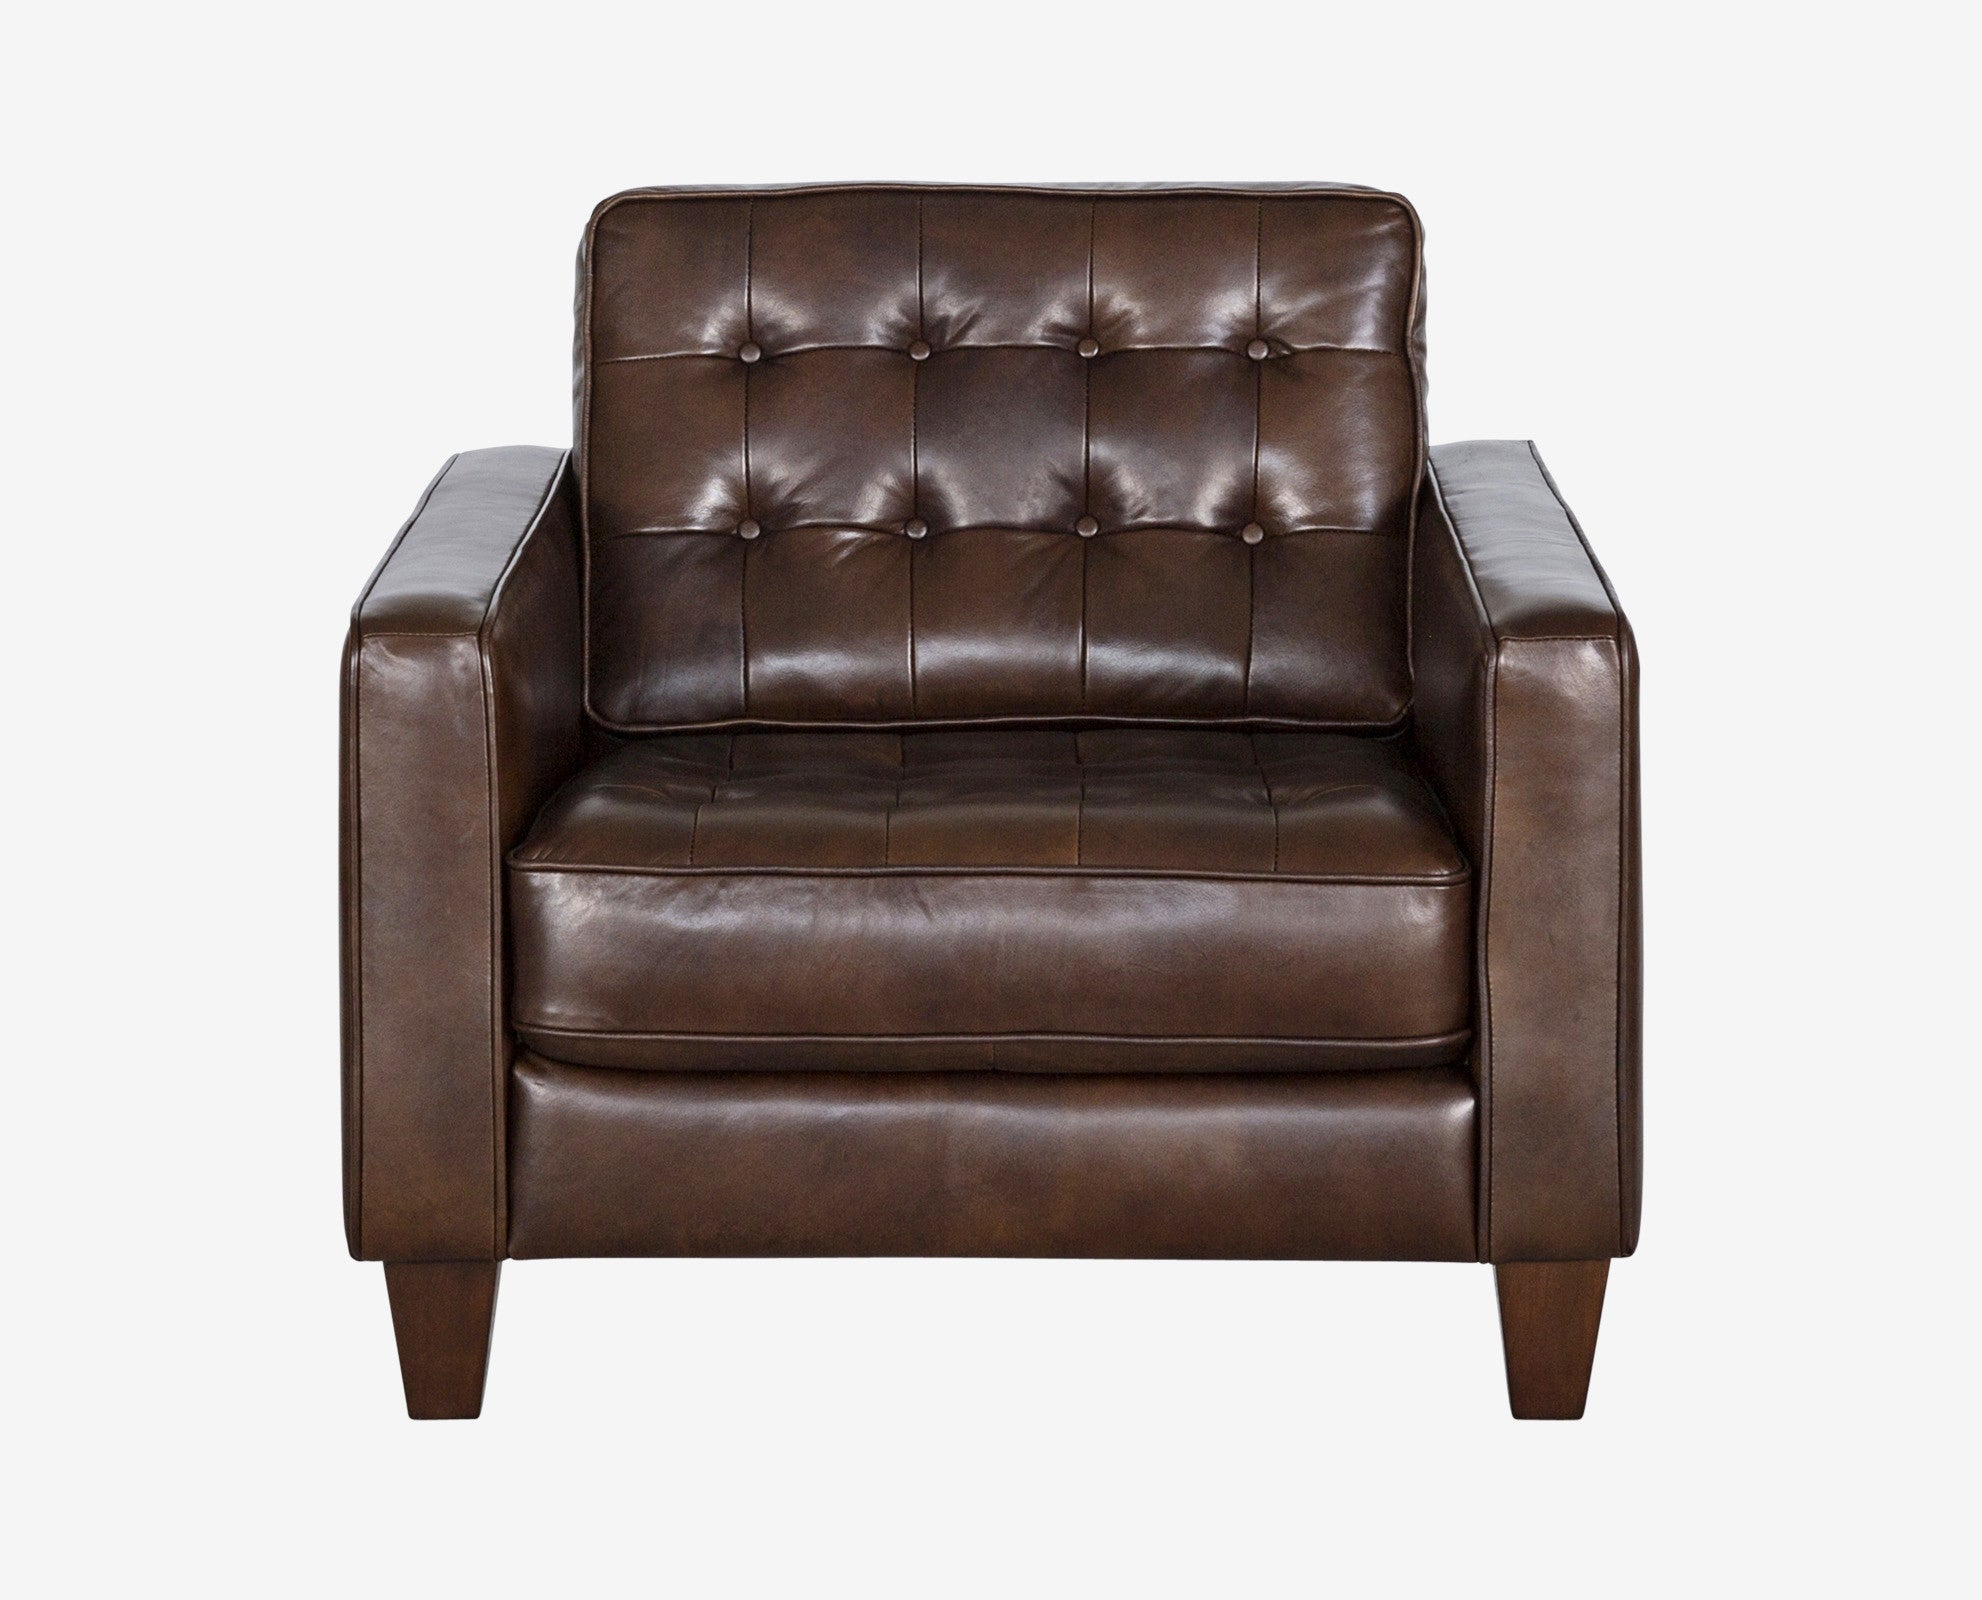 Contemporary design cushioned leather seating